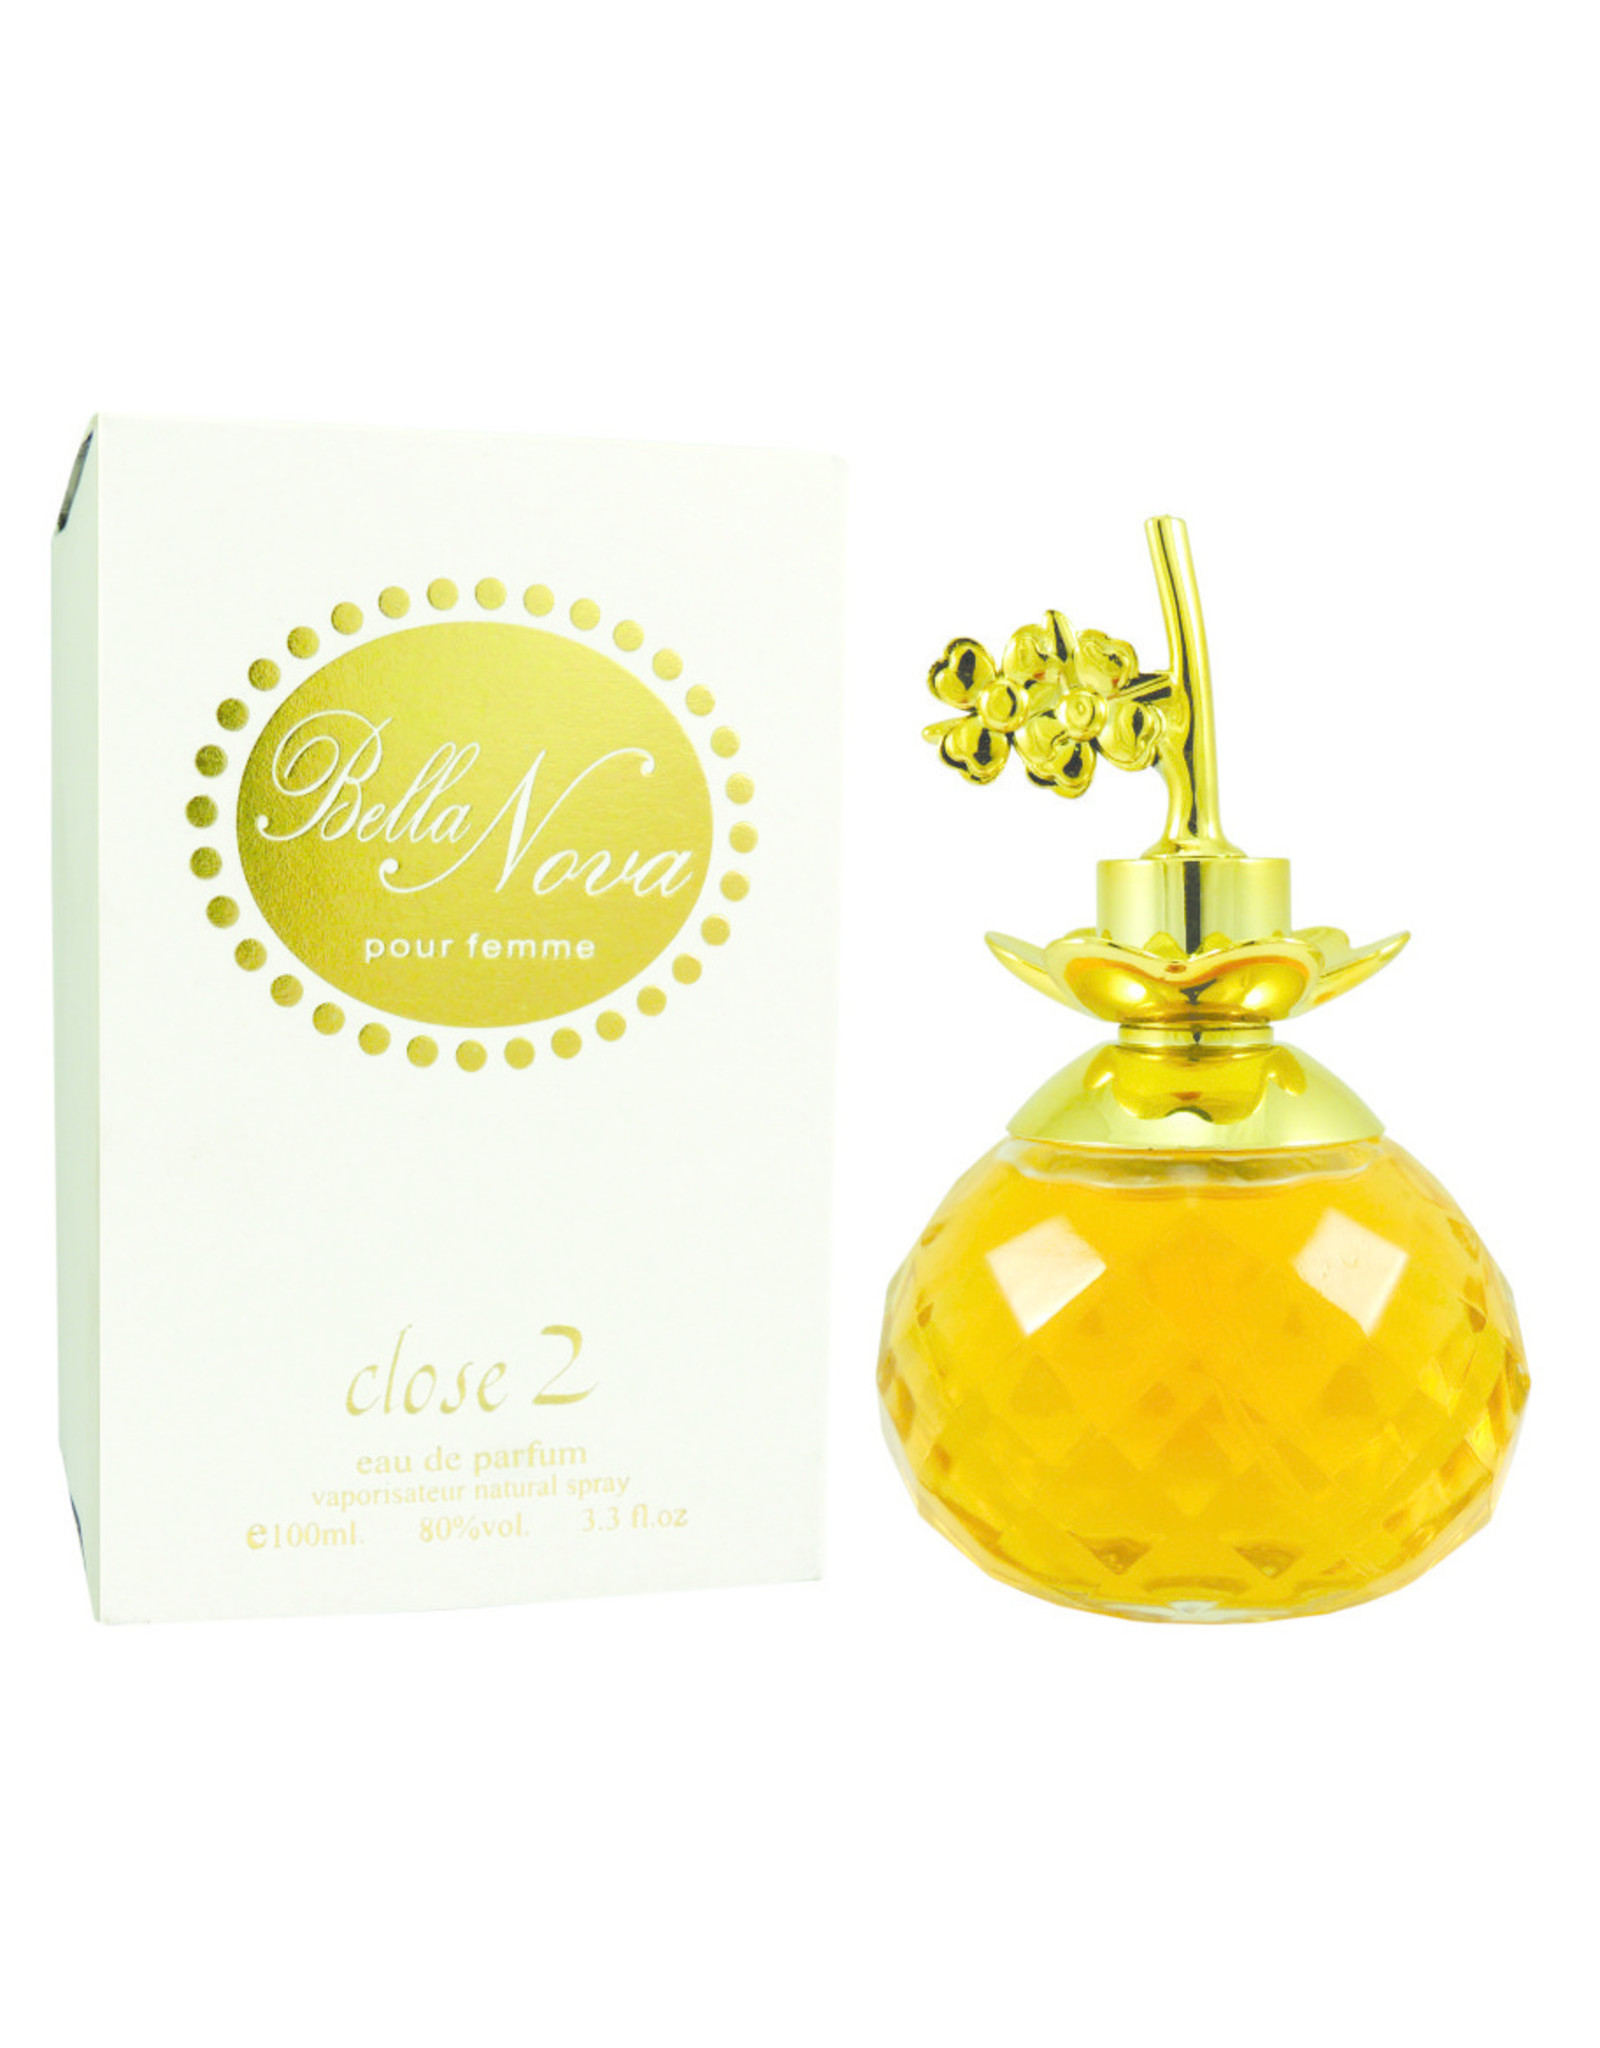 Close 2 parfums Bella Nova EDP 100 ml